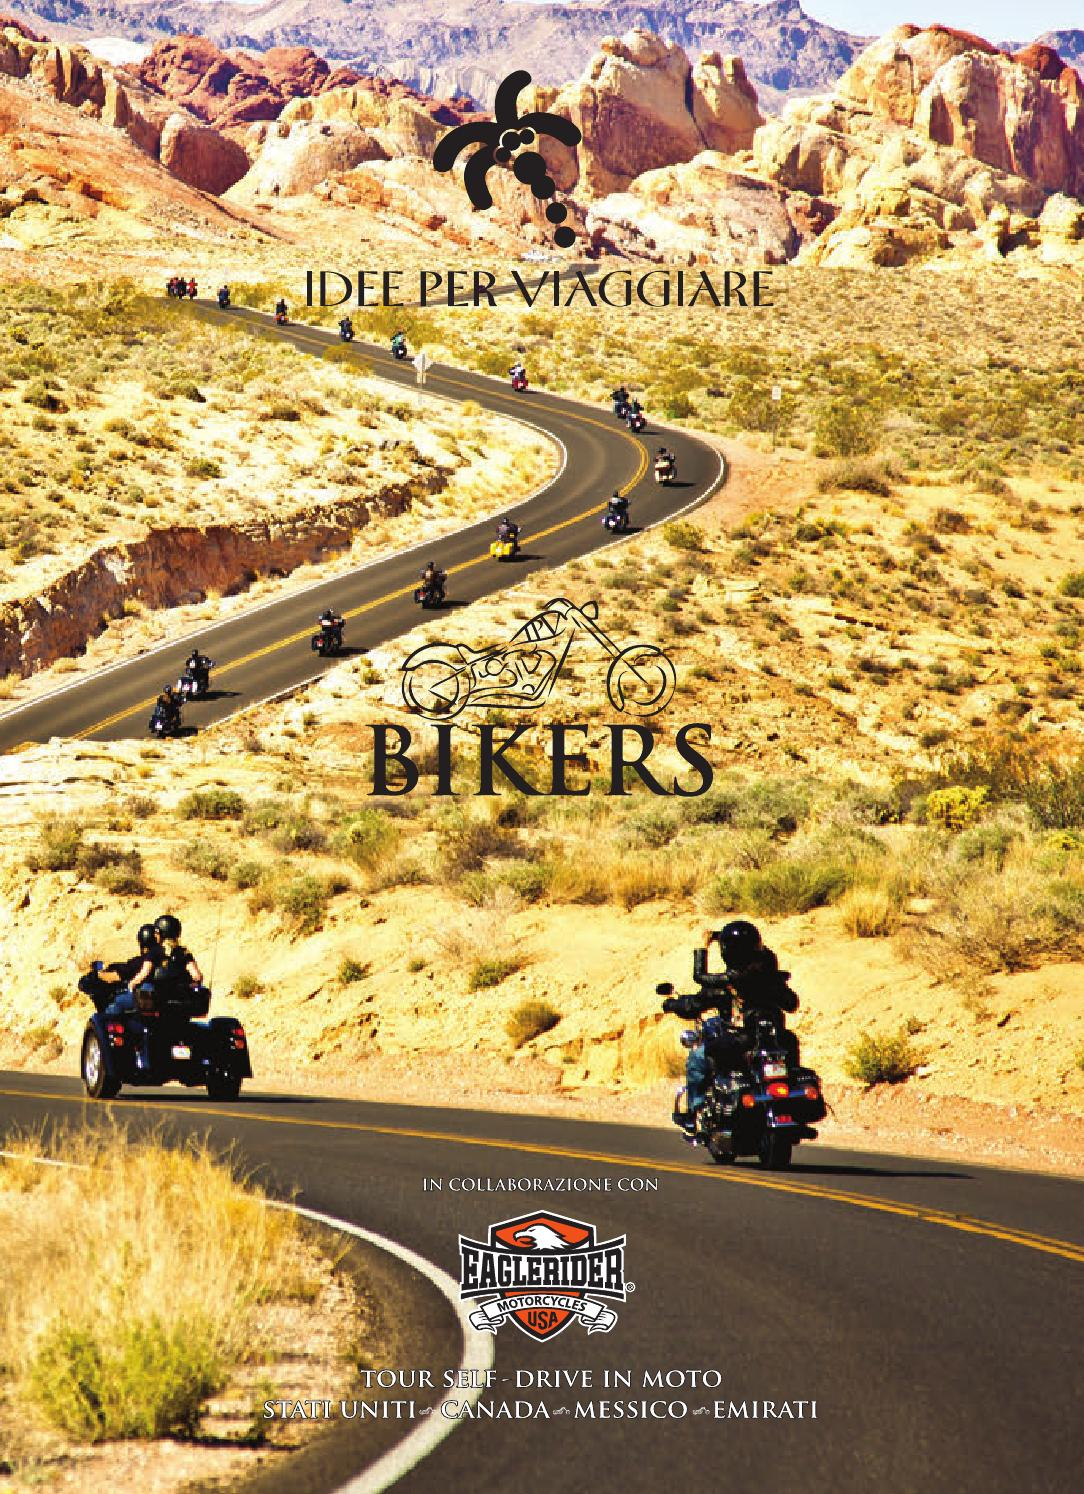 Bikers Tour in Harley  Davidson e Indian by Idee per Viaggiare  Issuu